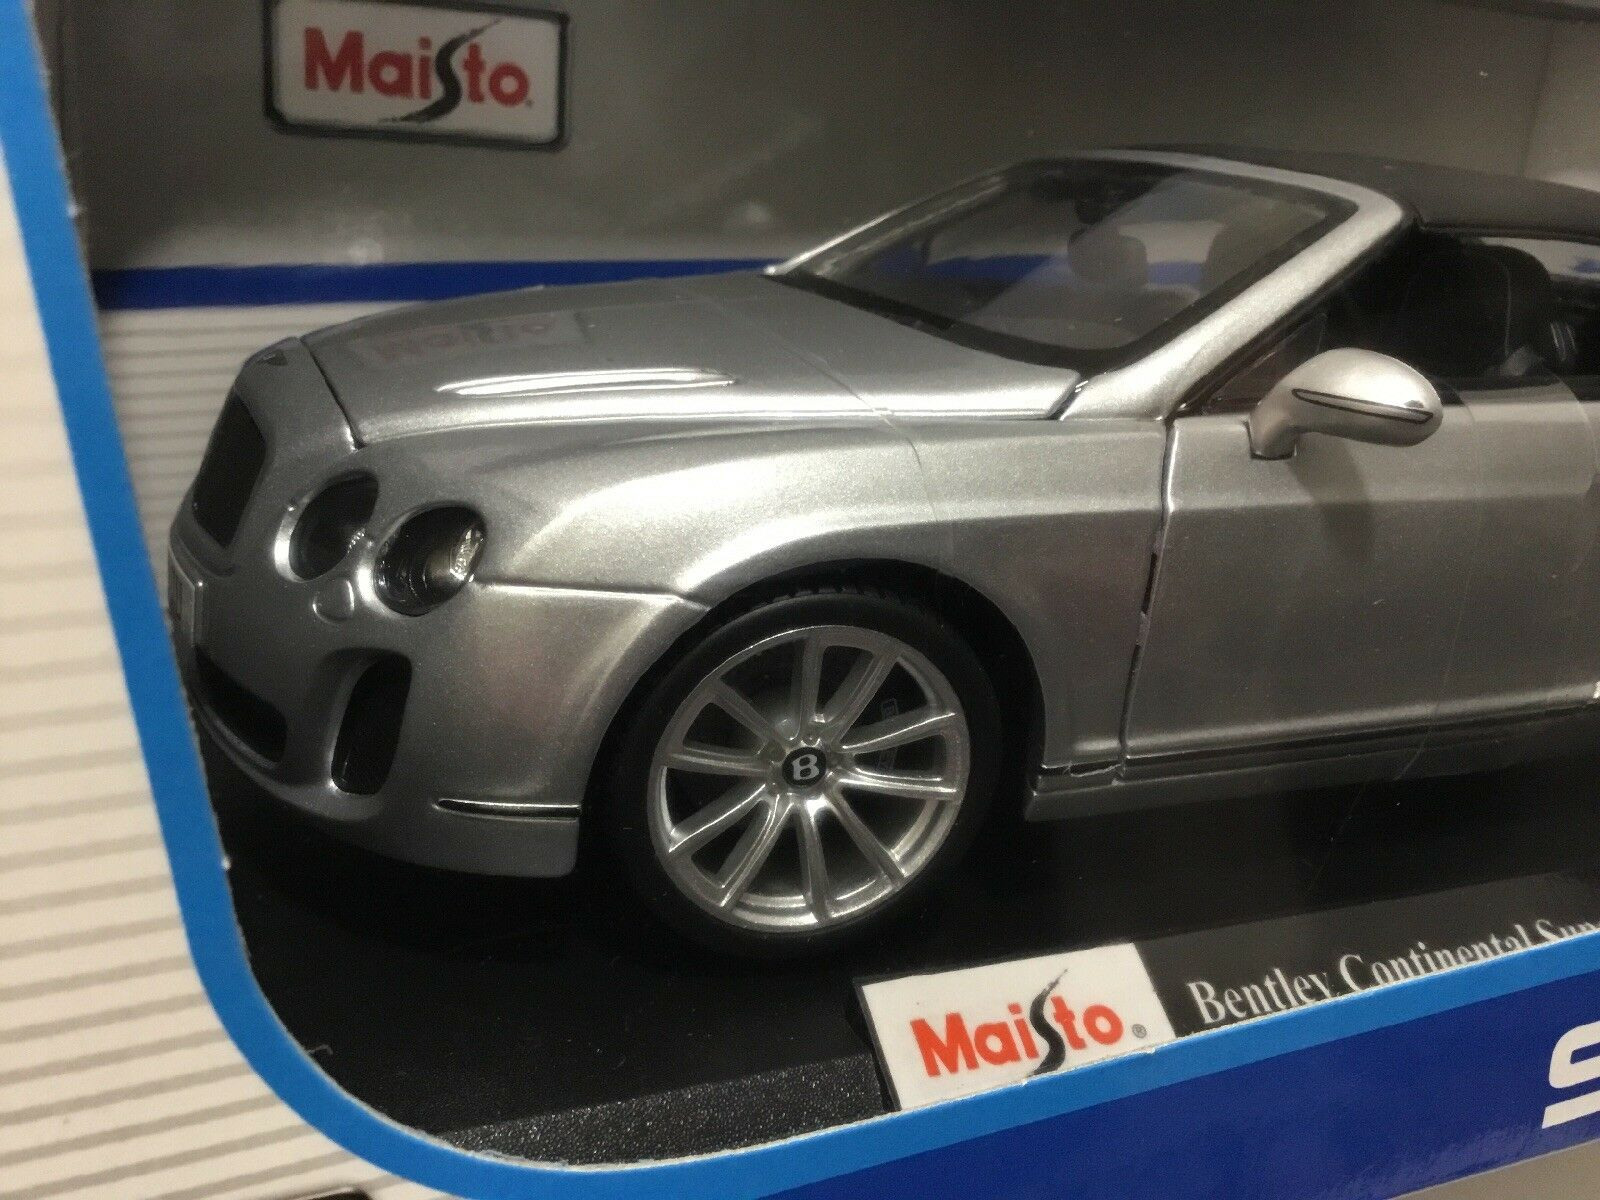 Bentley Continental Supersports Congreenible - - - 1 18 Maisto DIECAST - Very Classy  aa0e02